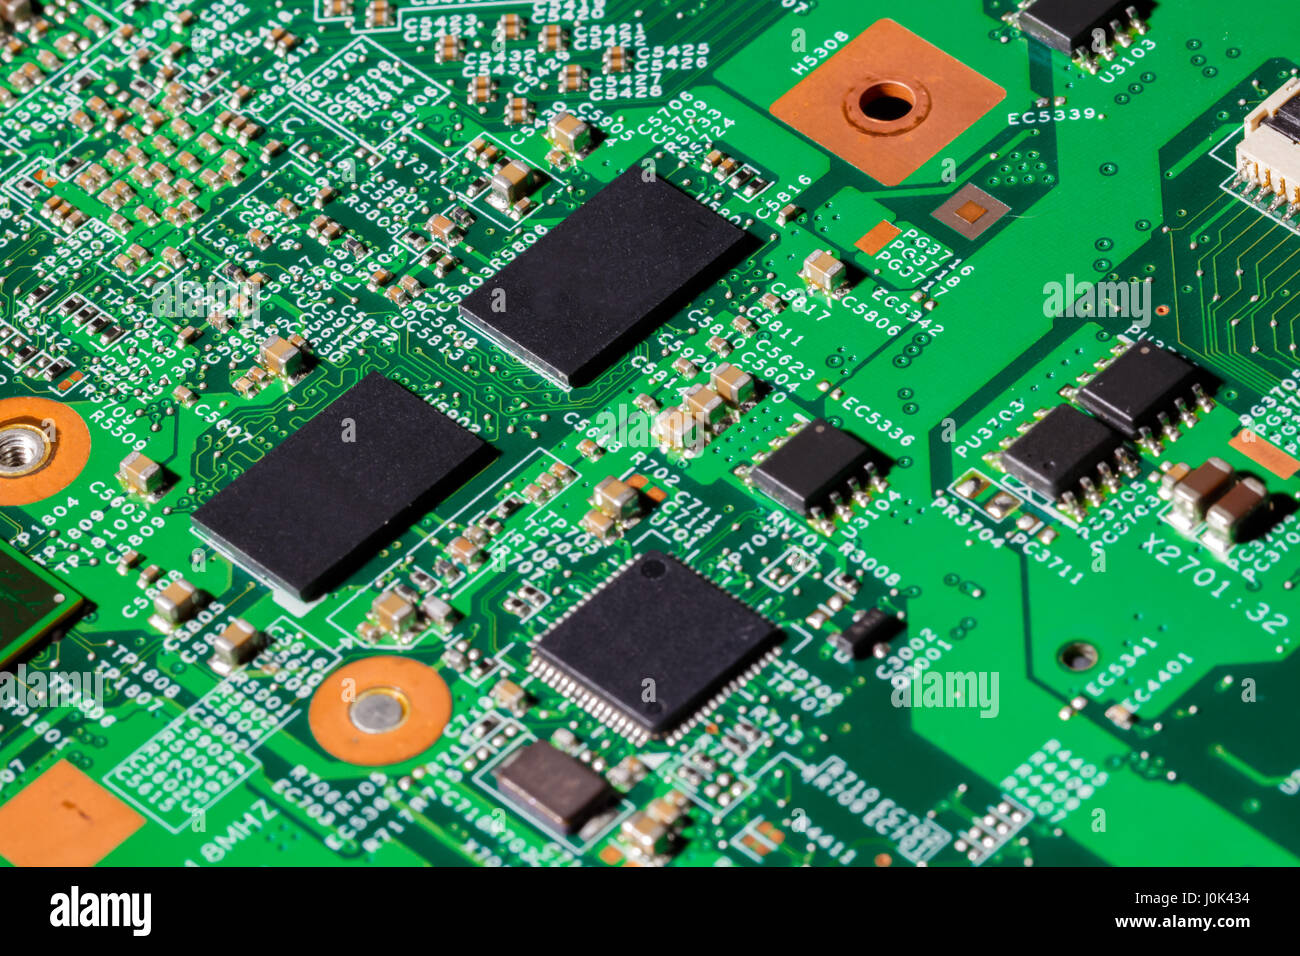 Close up shot of computer chips on a PCB - Stock Image